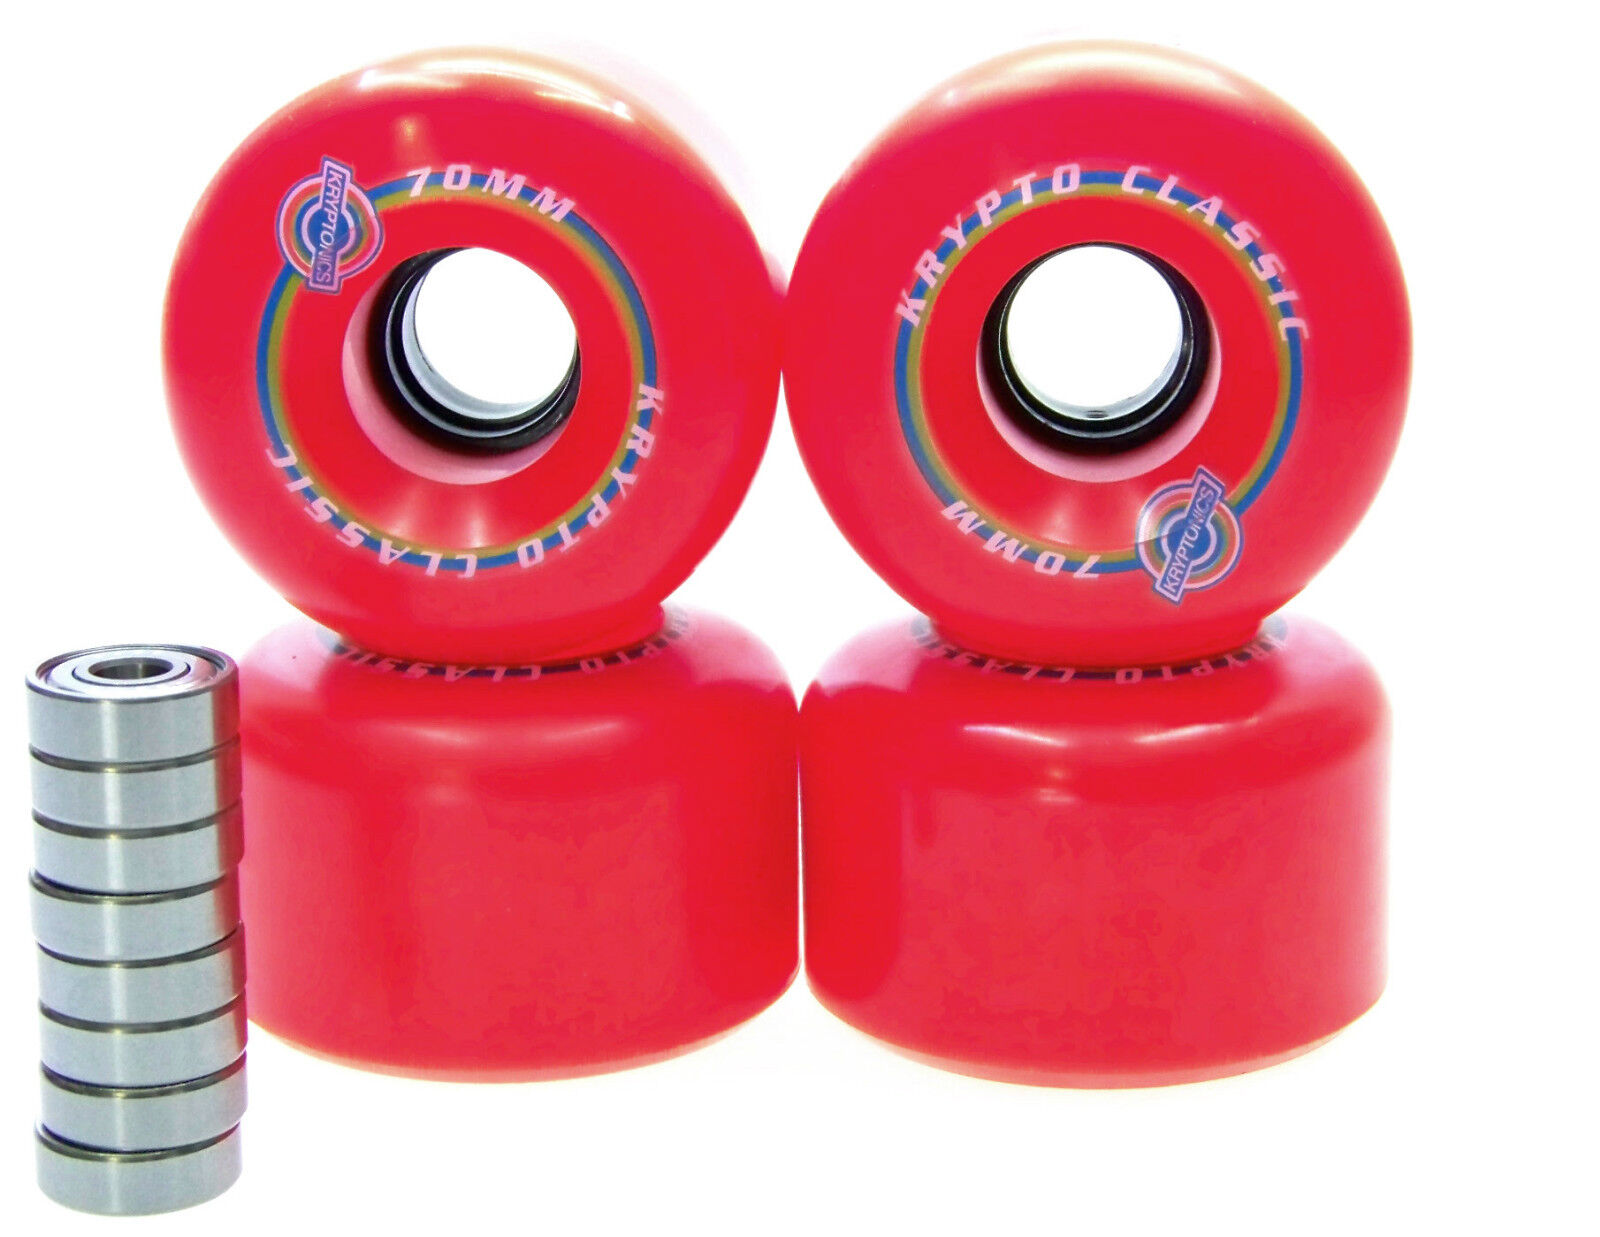 Kryptonics Classic 70mm   78A Longboard wheels bearing ABEC  5 7 9 RED  factory outlet online discount sale